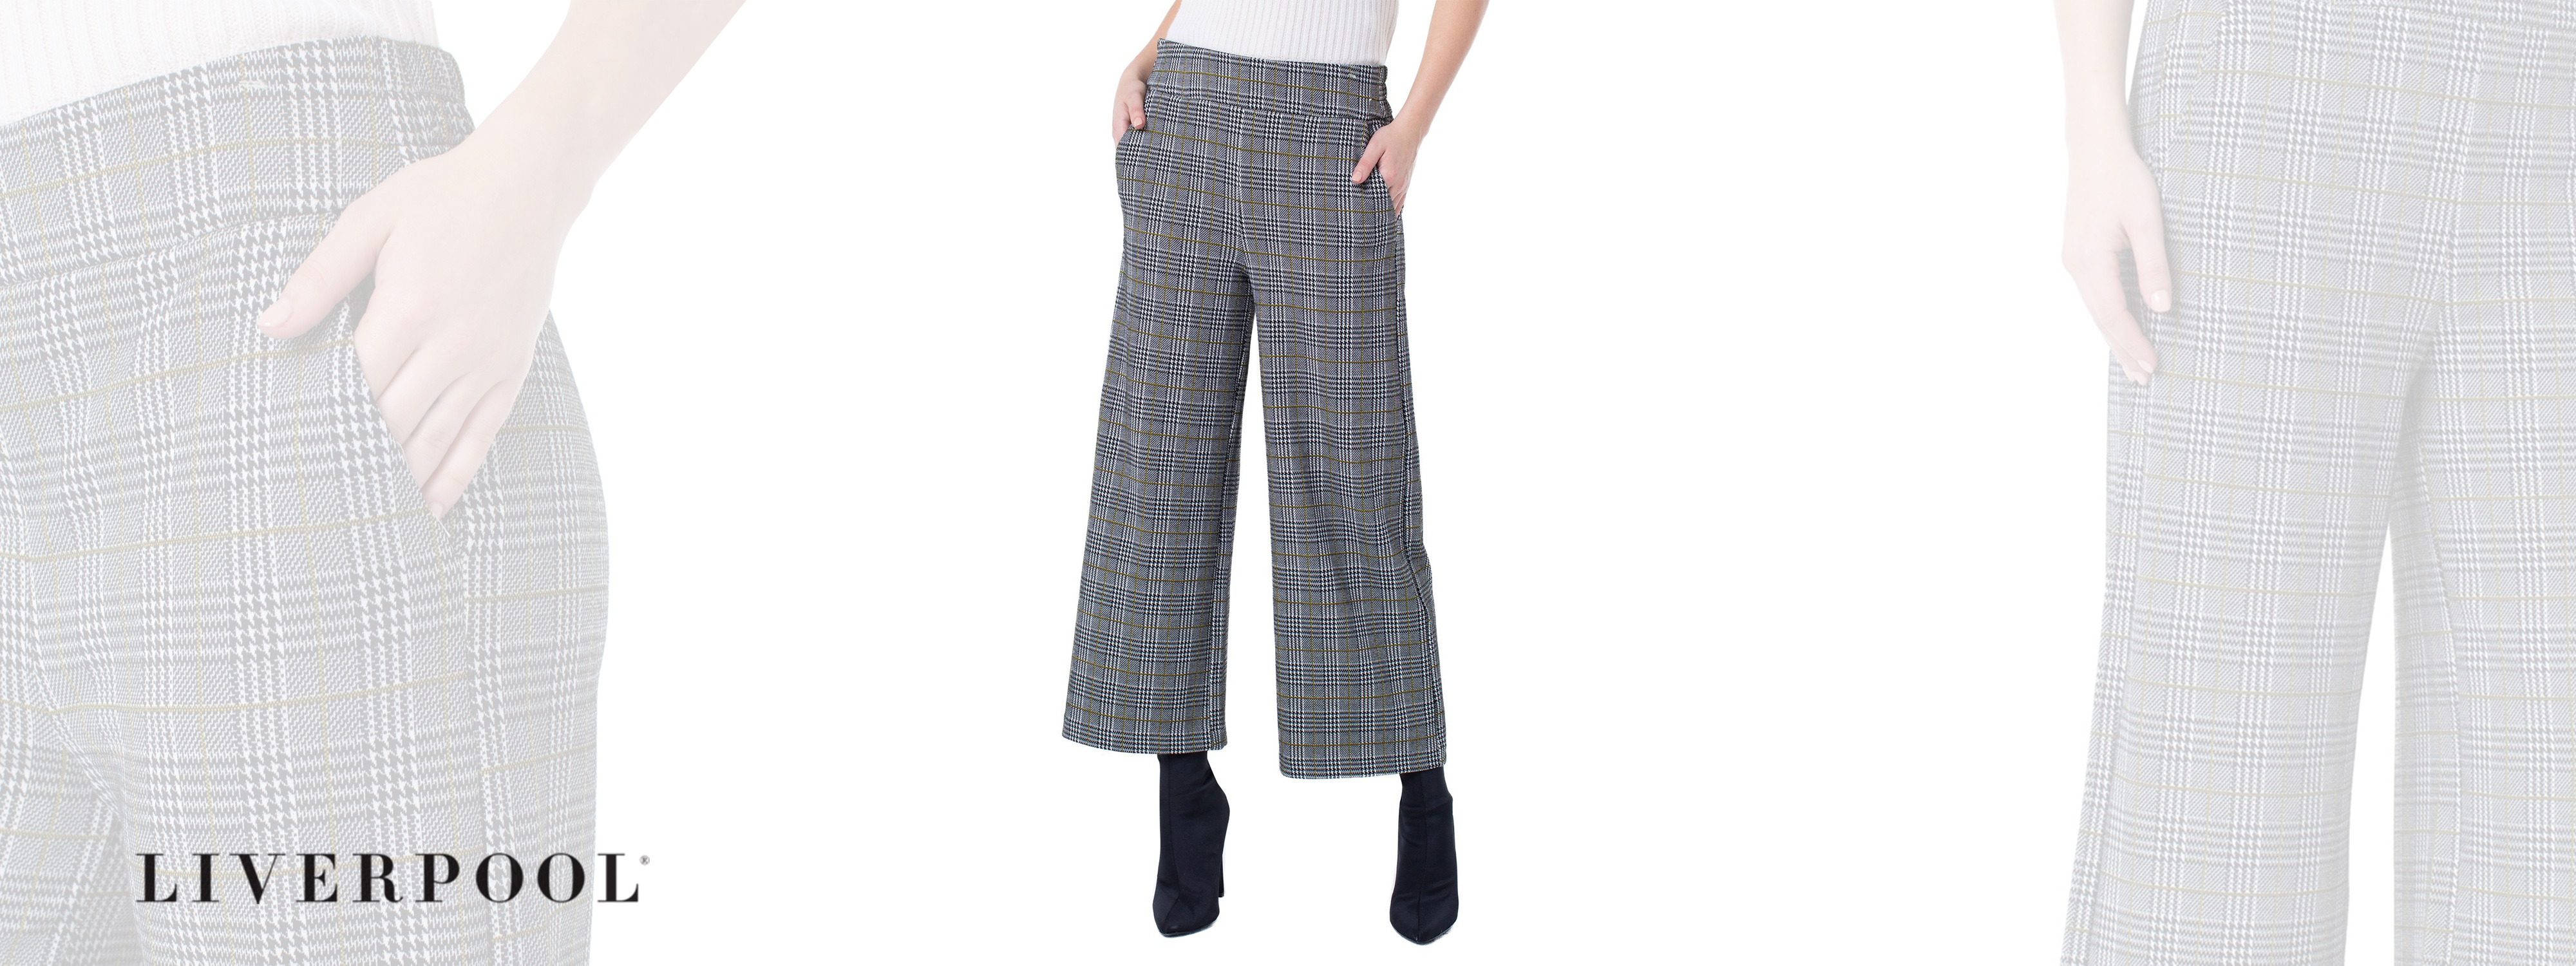 Liverpool Jeans Mabel Pull-on Pants